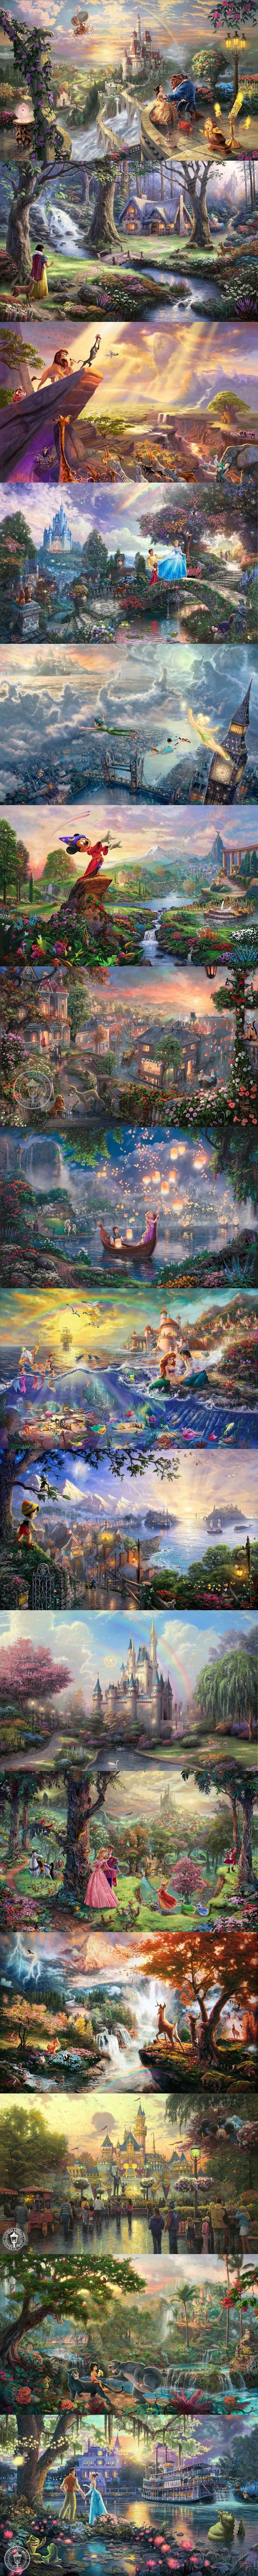 Disney Dreams Collection By Thomas Kinkade. I have some Of these in puzzle form: